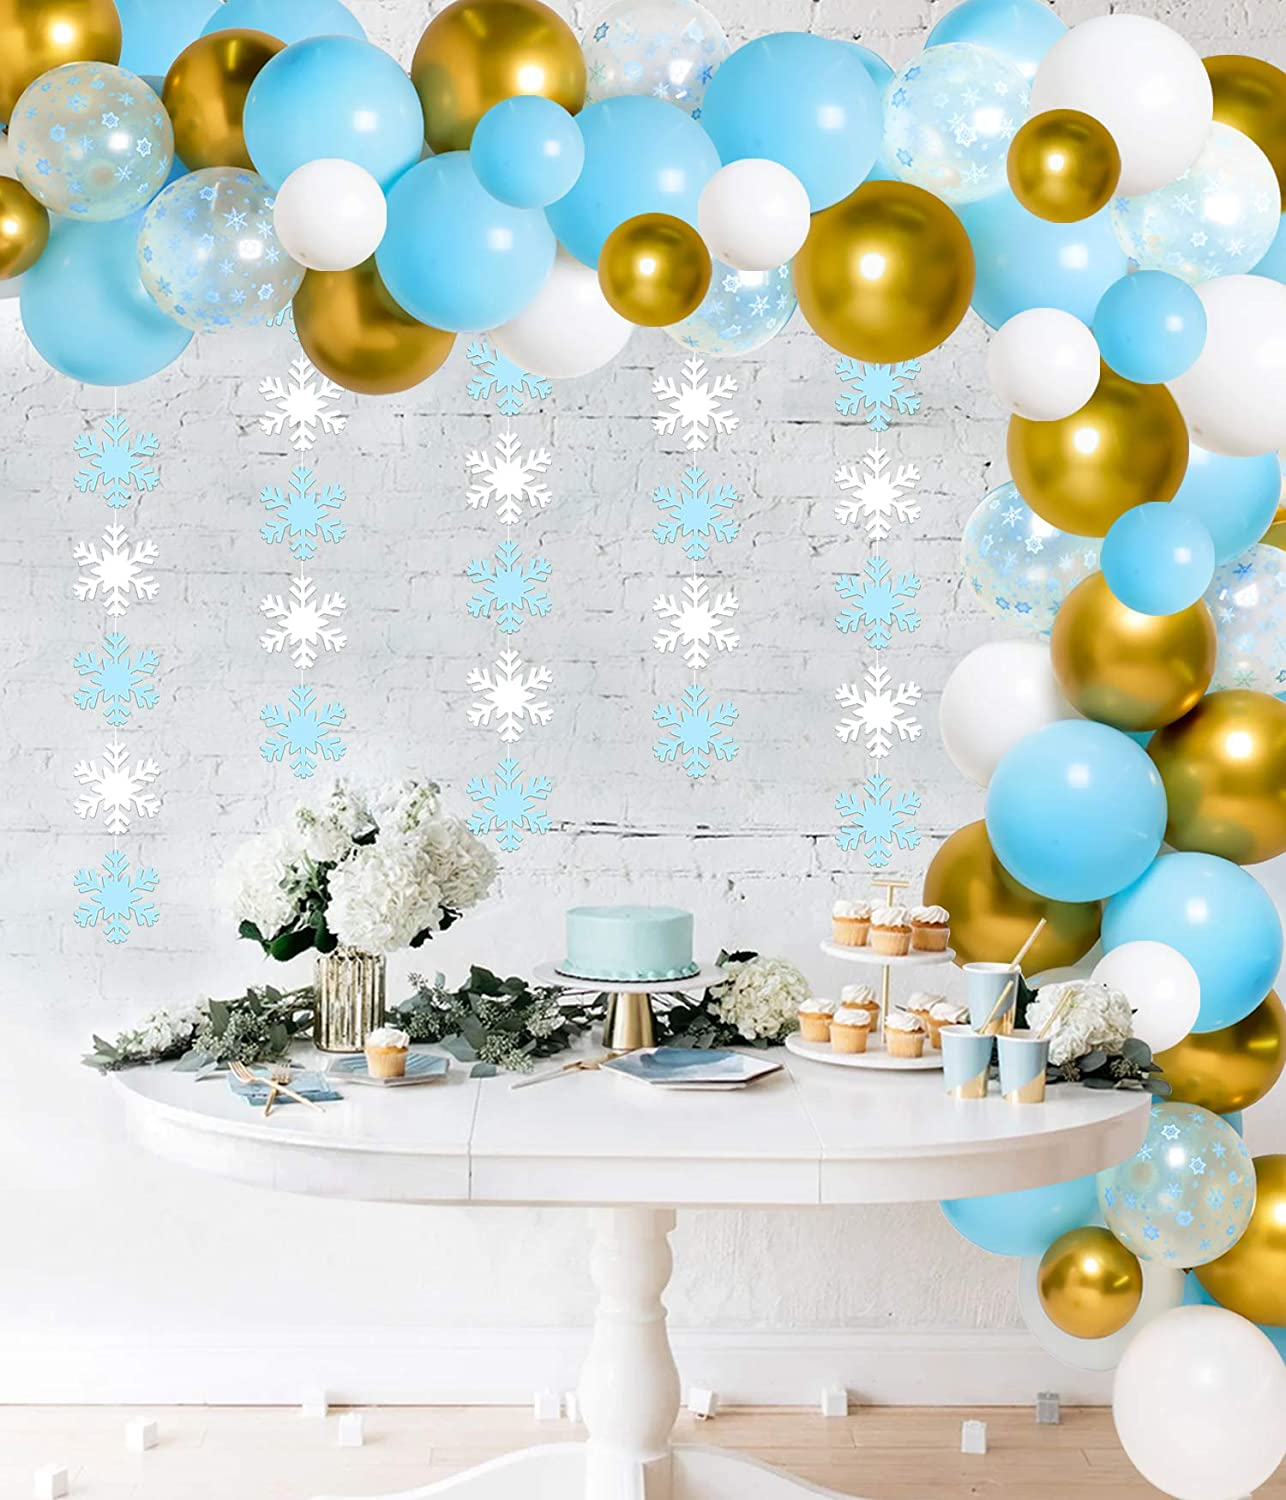 You choose colors Princess Table decor Centerpiece Baby shower or 1st birthday decor Turquoise Gold